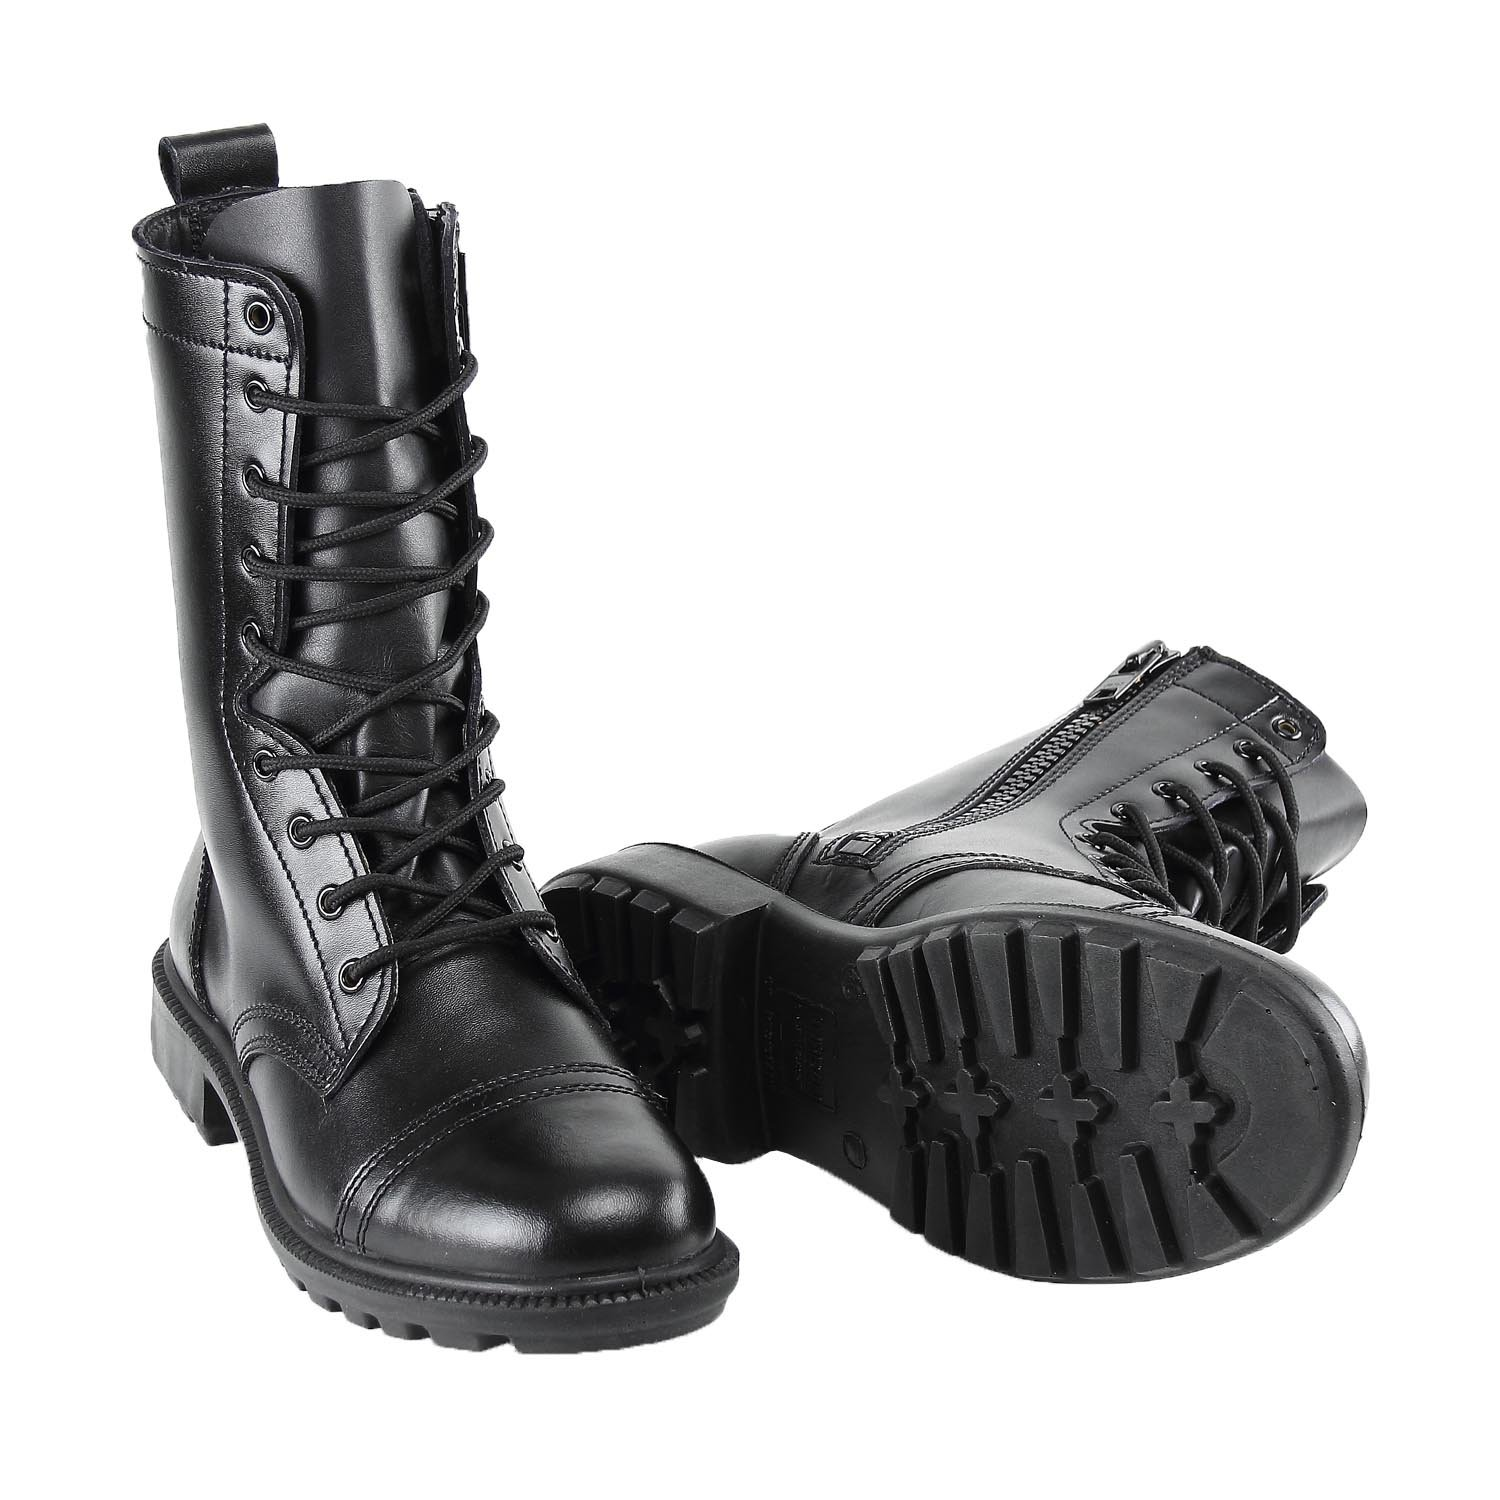 BURGAN 802 Combat Jump Boot (Unisex) - All Leather with Side Zip B075Q5KZ2R 46 (US Mens 13)